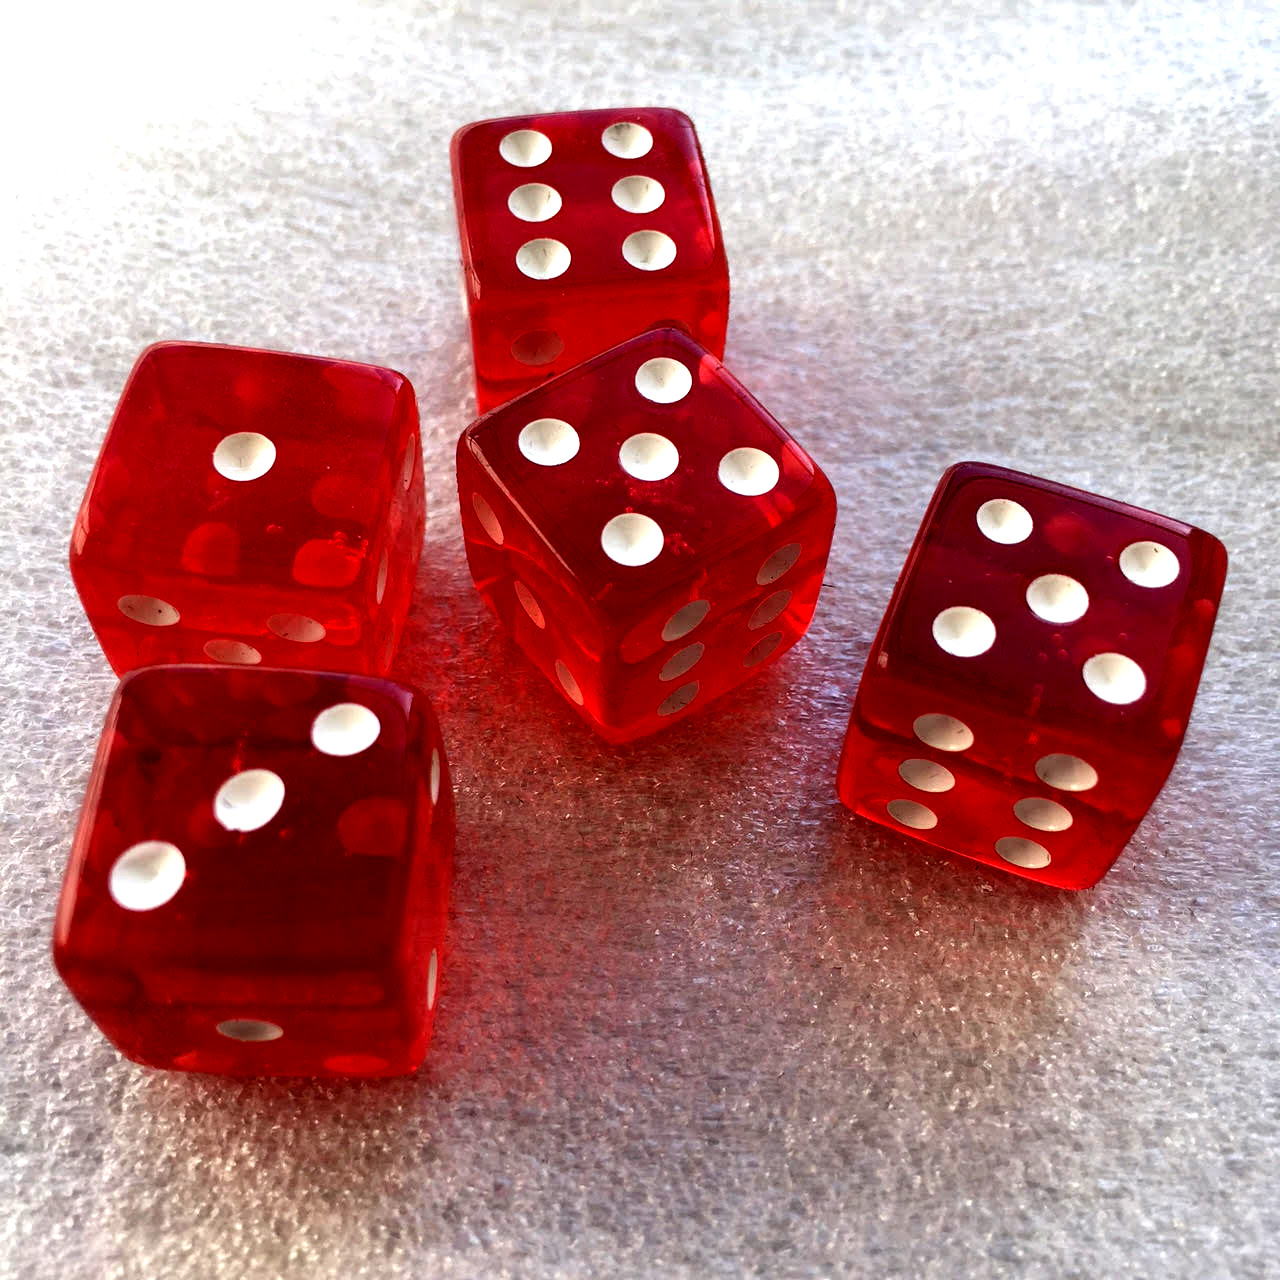 Red dice (x5 in the basic bag).